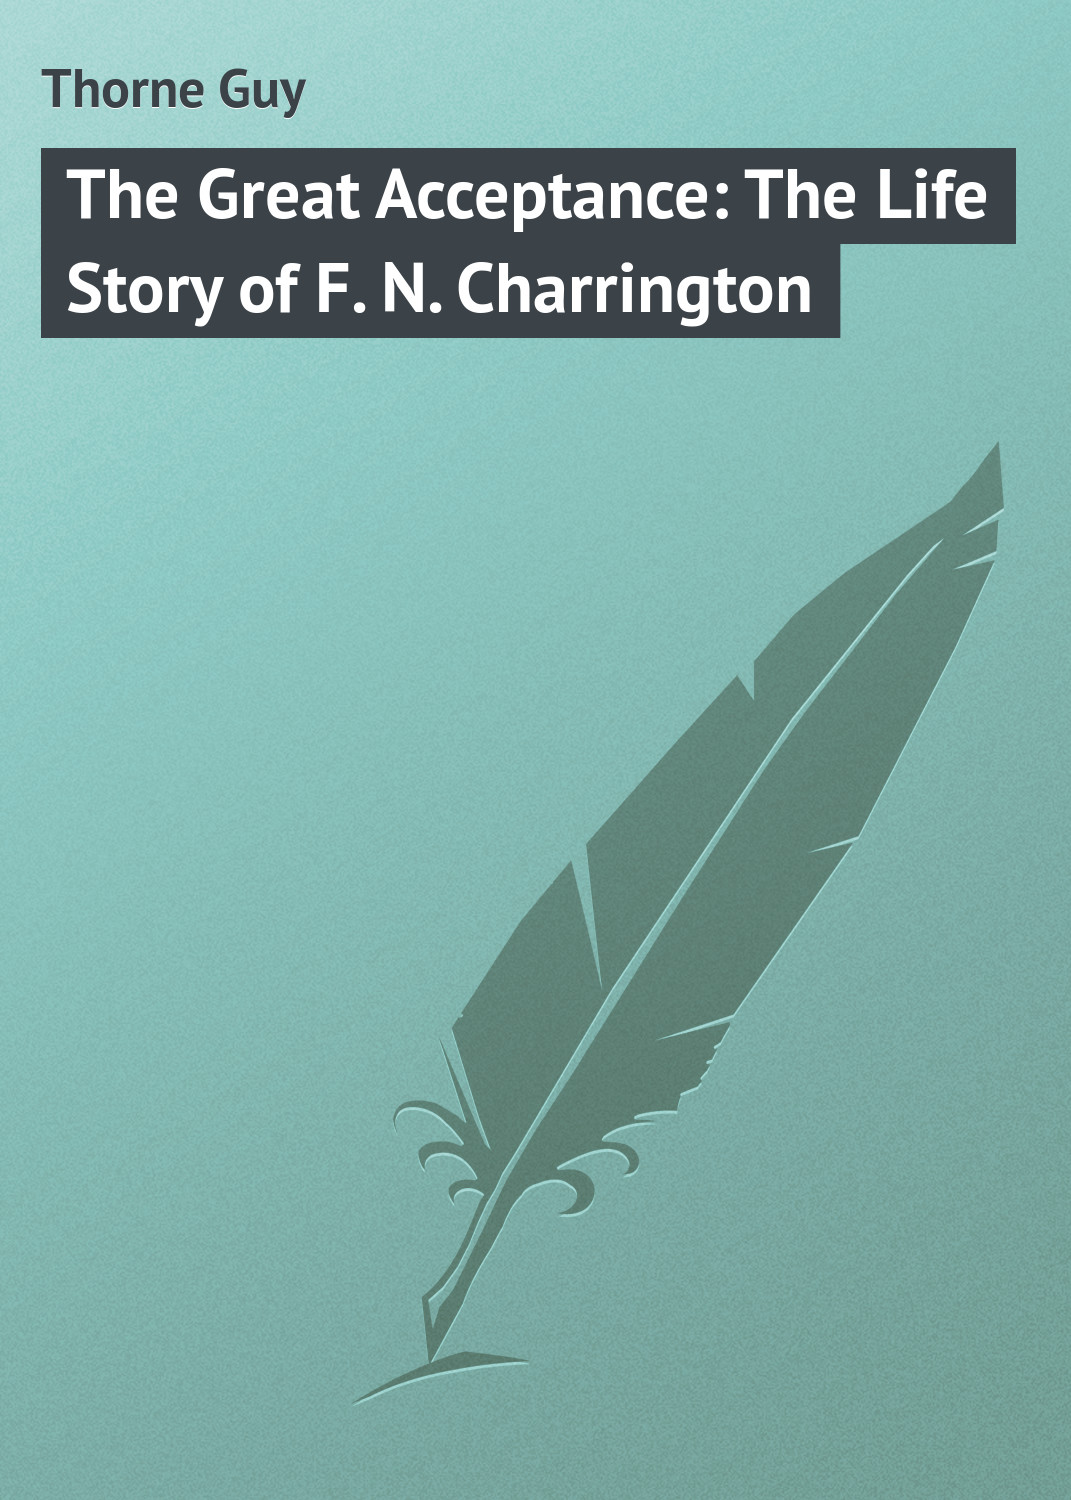 Thorne Guy The Great Acceptance: The Life Story of F. N. Charrington